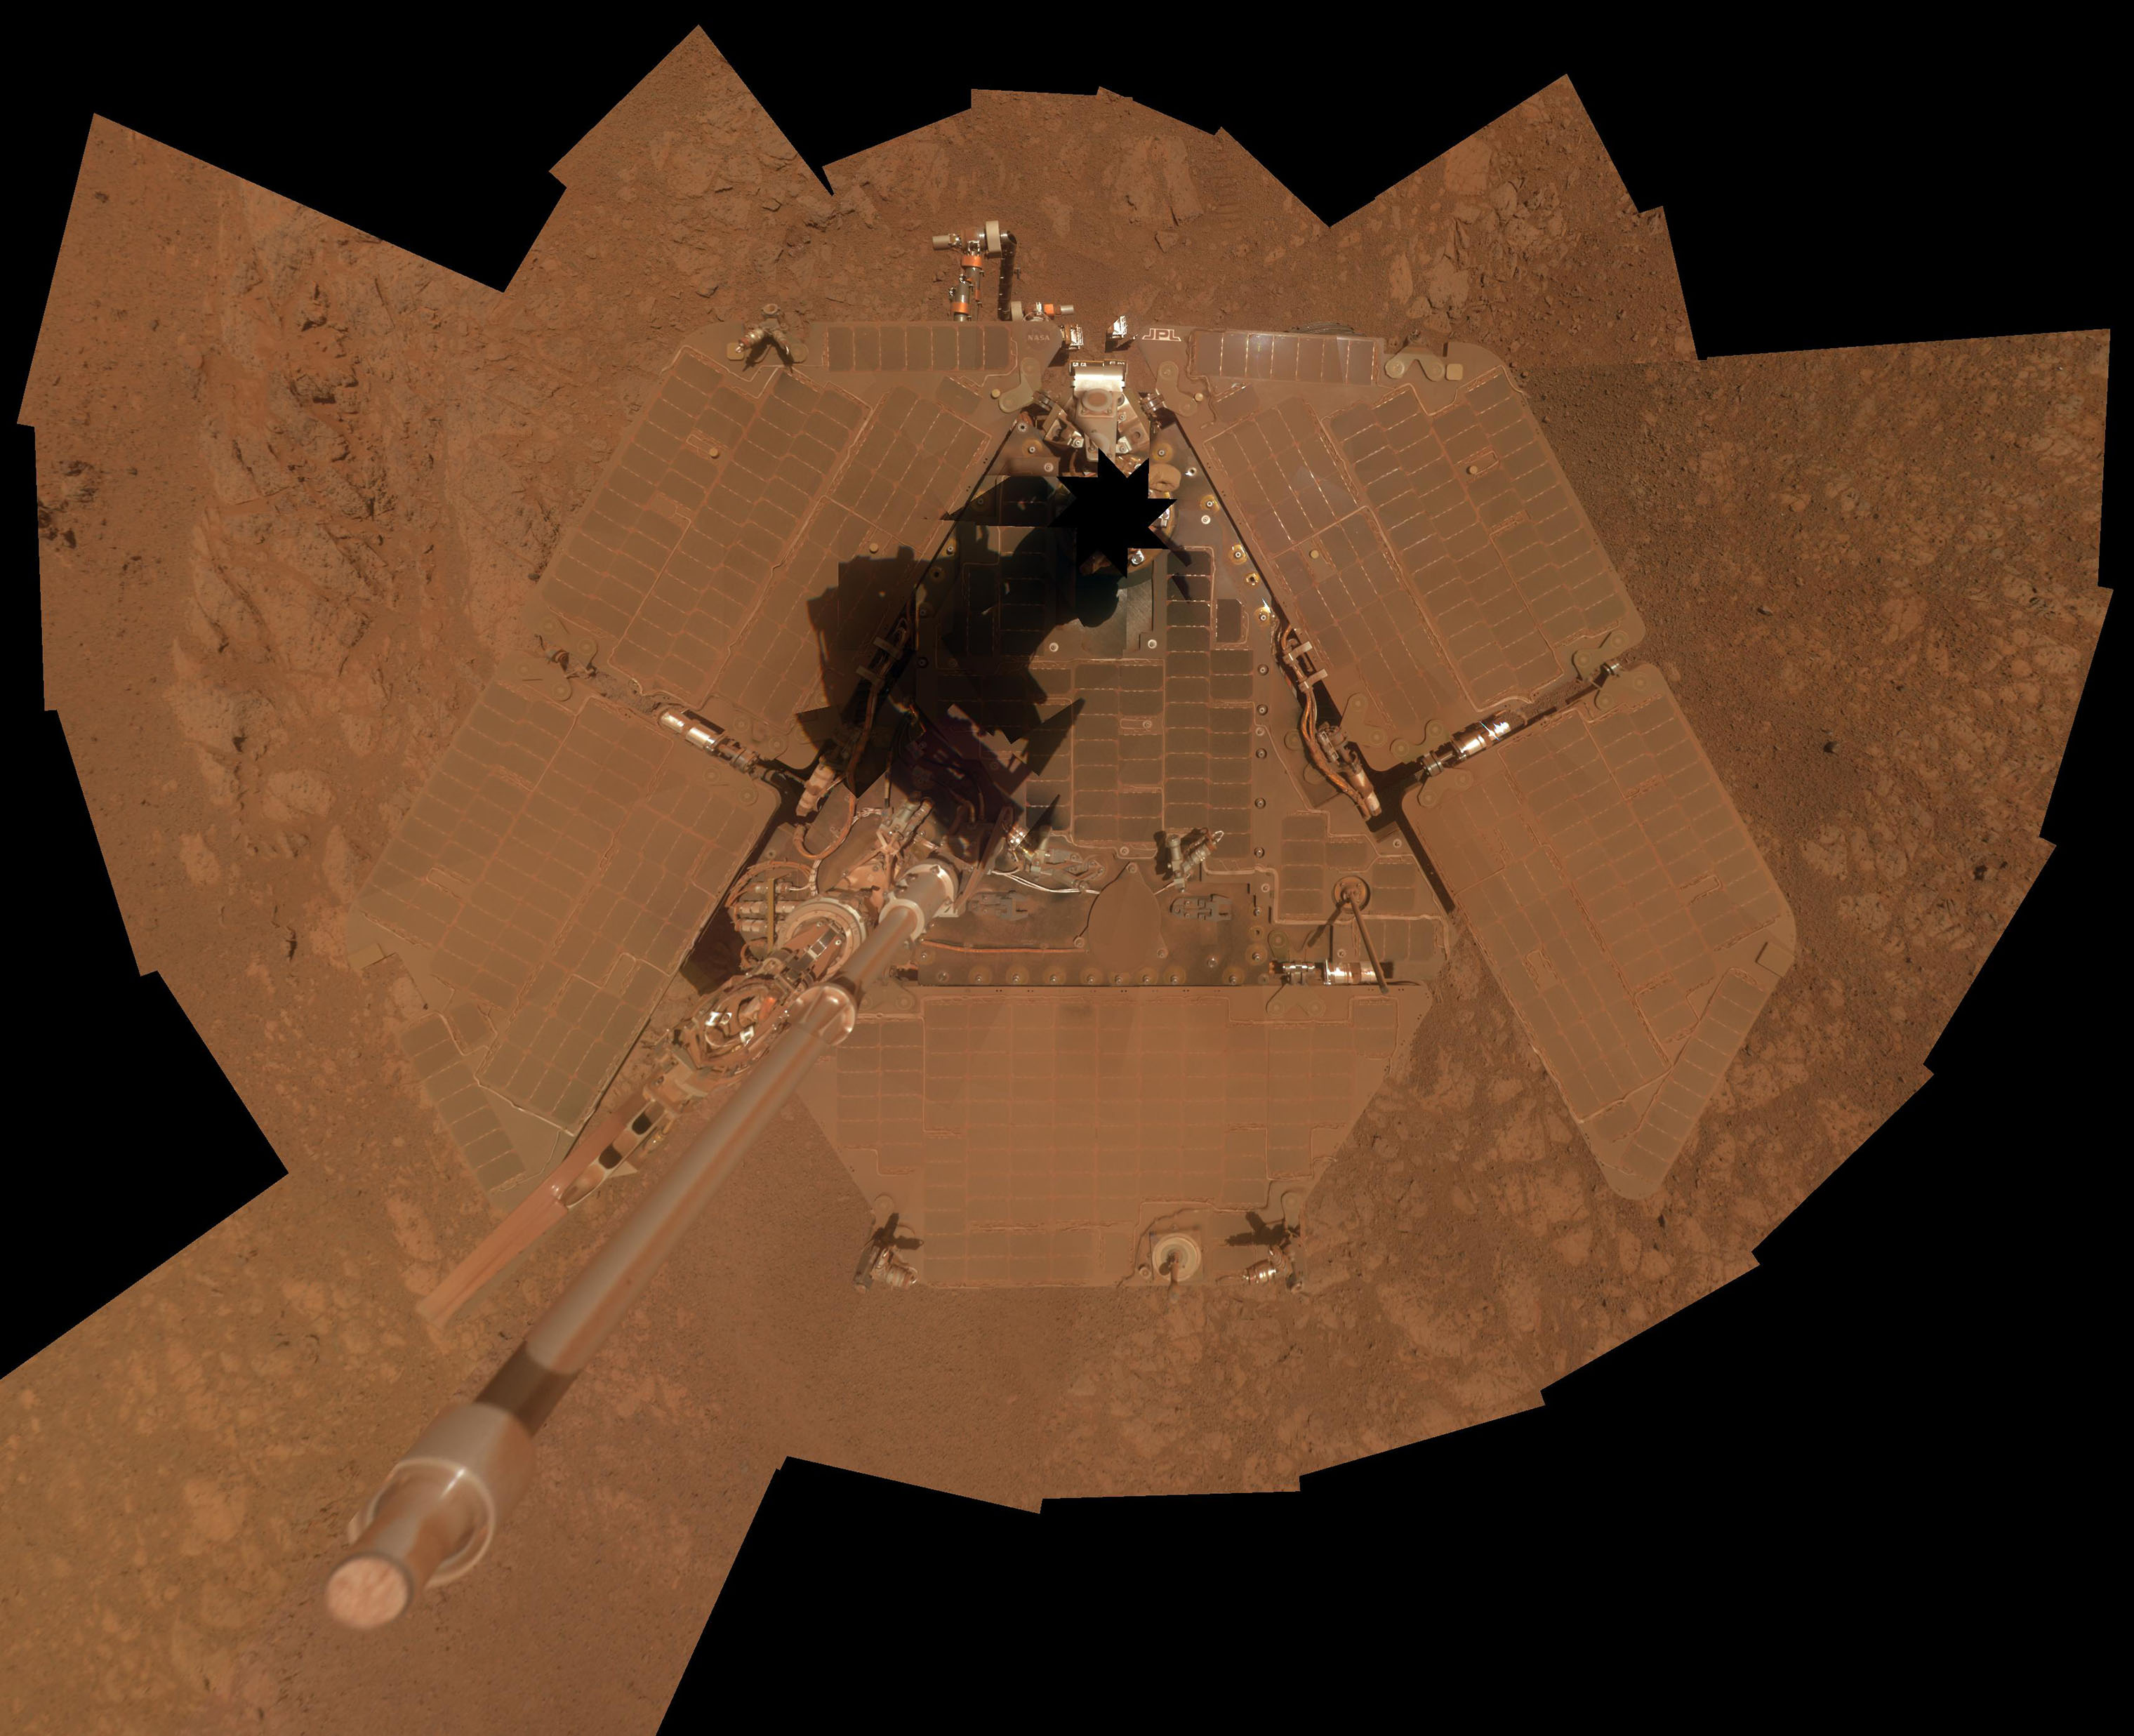 Opportunity recorded the component images for this self-portrait about three weeks before completing a decade of work on Mars.